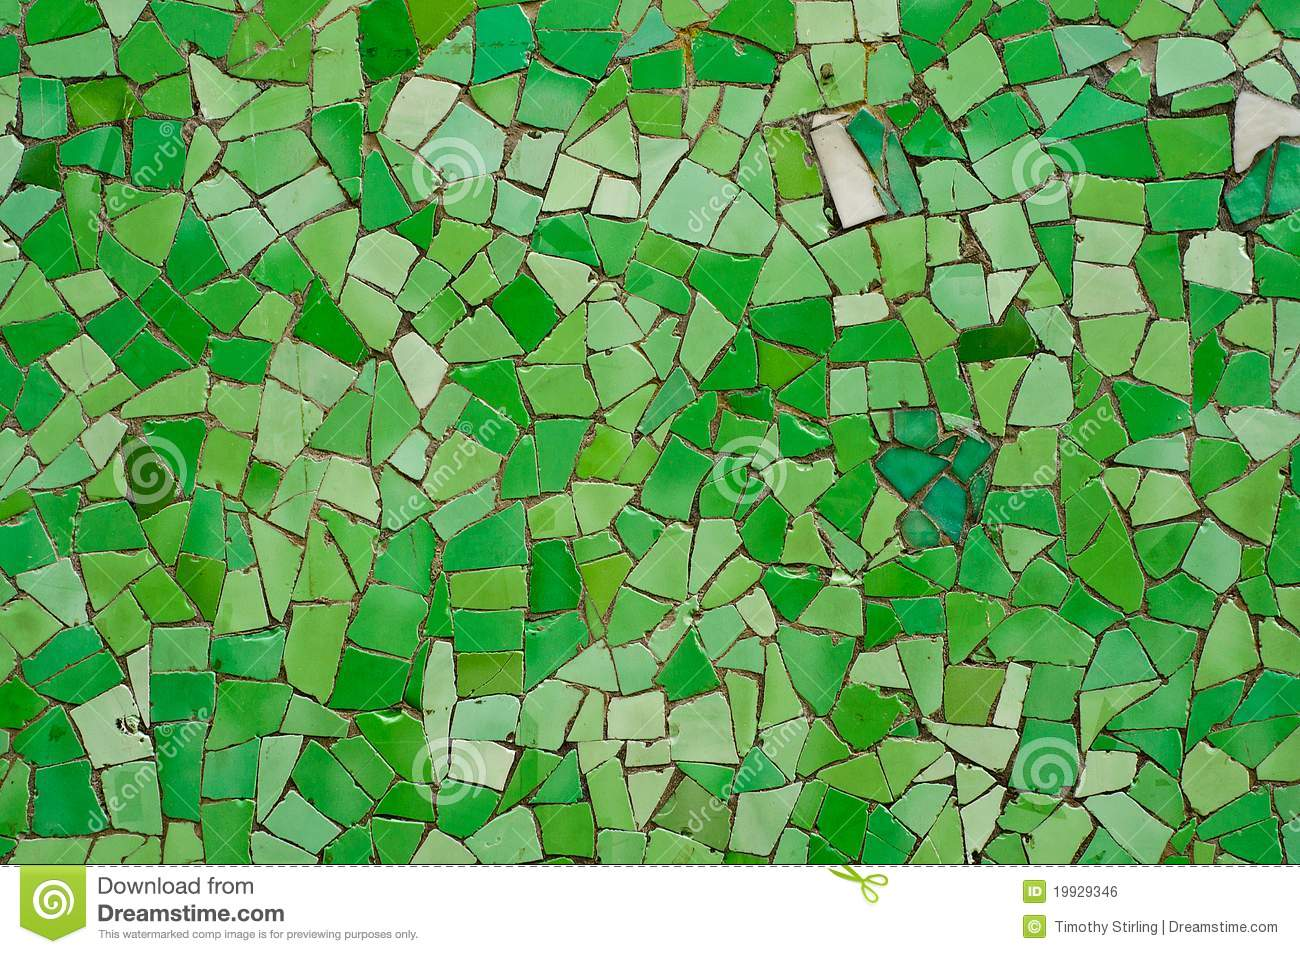 Broken tiles mosaic floor or wall background texture stock photo - Broken Green Wall Tiles Royalty Free Stock Image Image